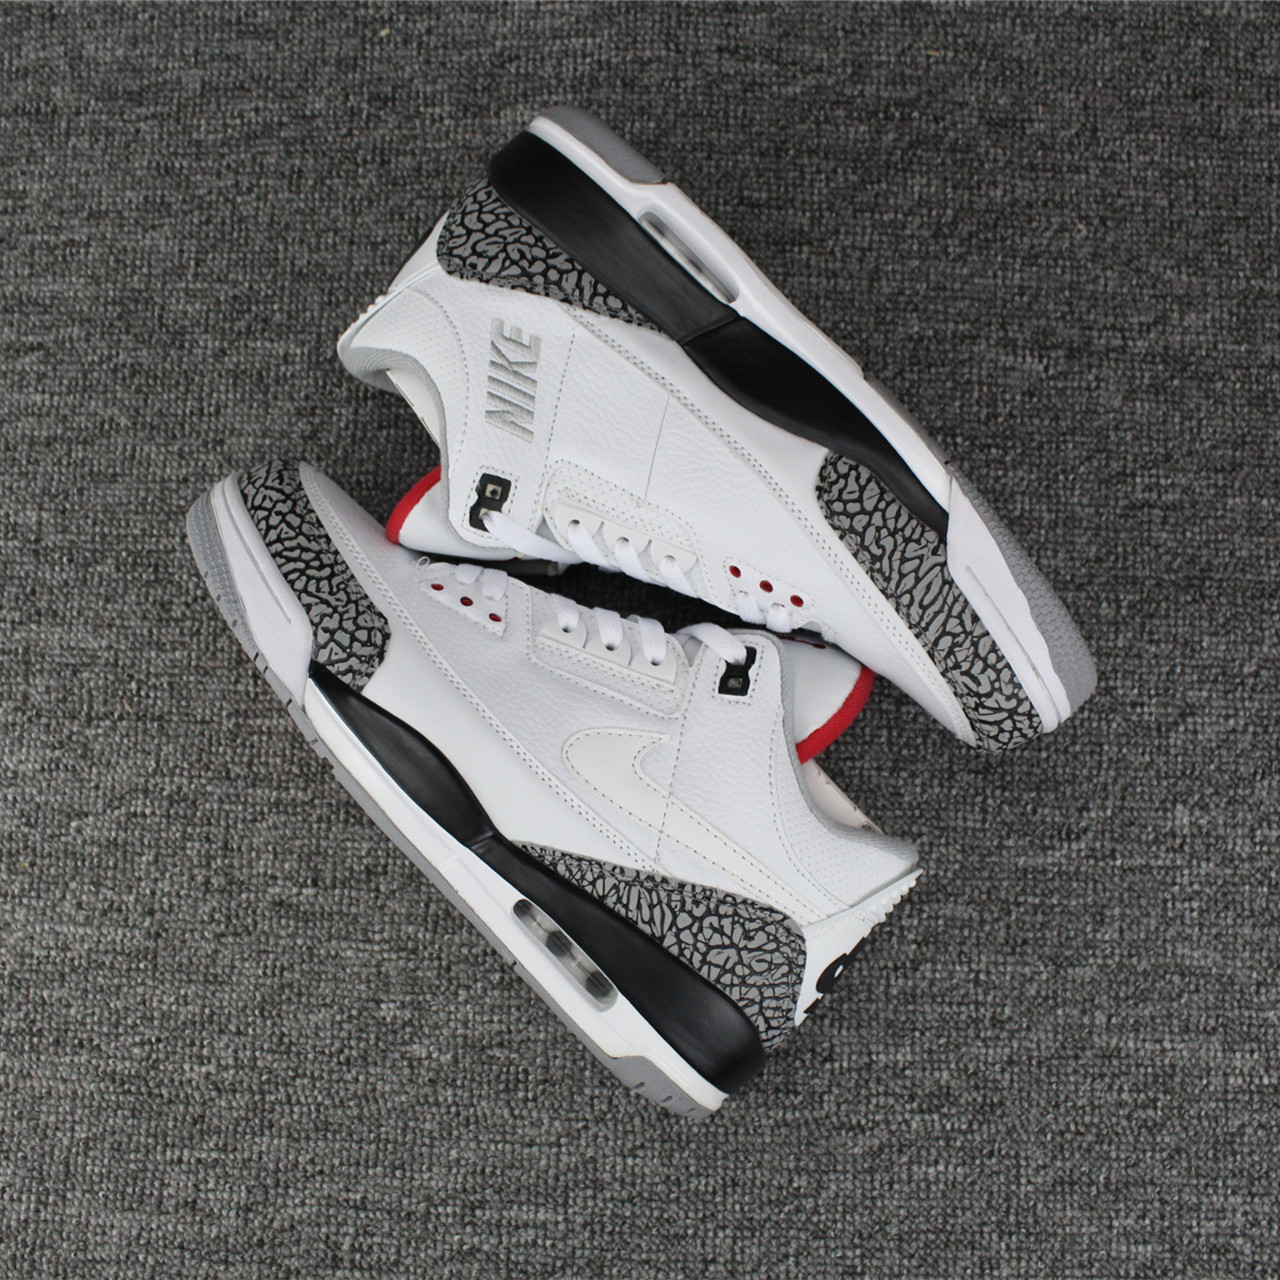 2018 Jordan 3 Retro White Cement Grey Black White Swoosh